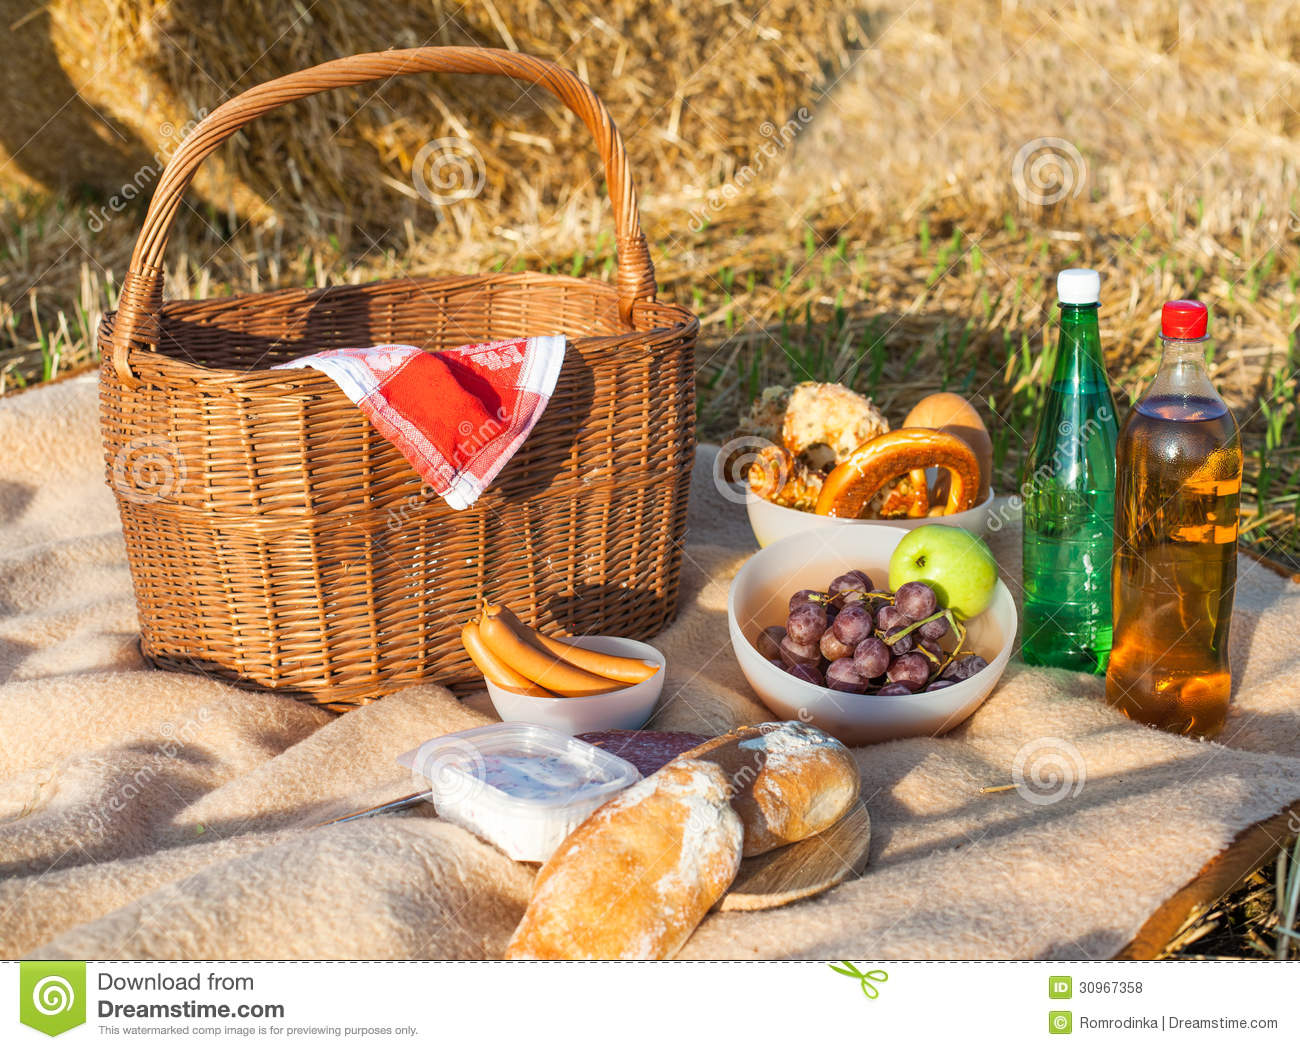 Picnic Basket Food : Picnic basket and different food drinks on straw field